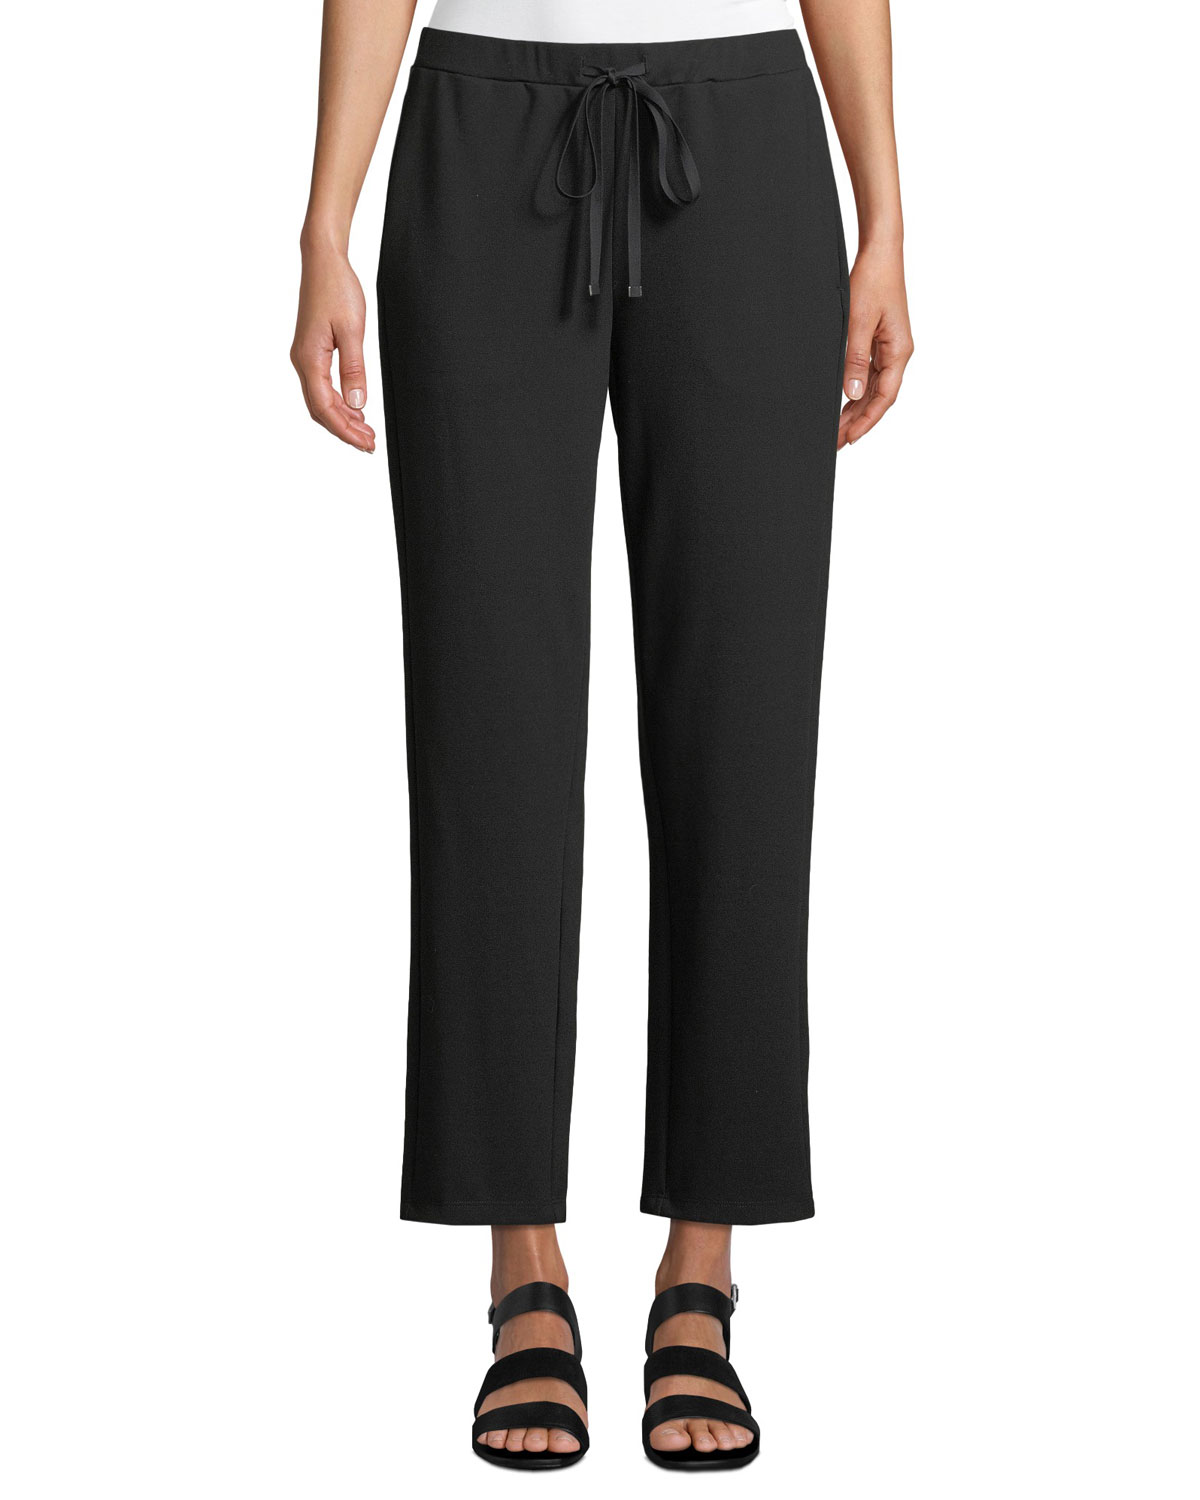 c8989dd9ee7 Eileen Fisher Plus Size Travel Ponte Ankle Pants